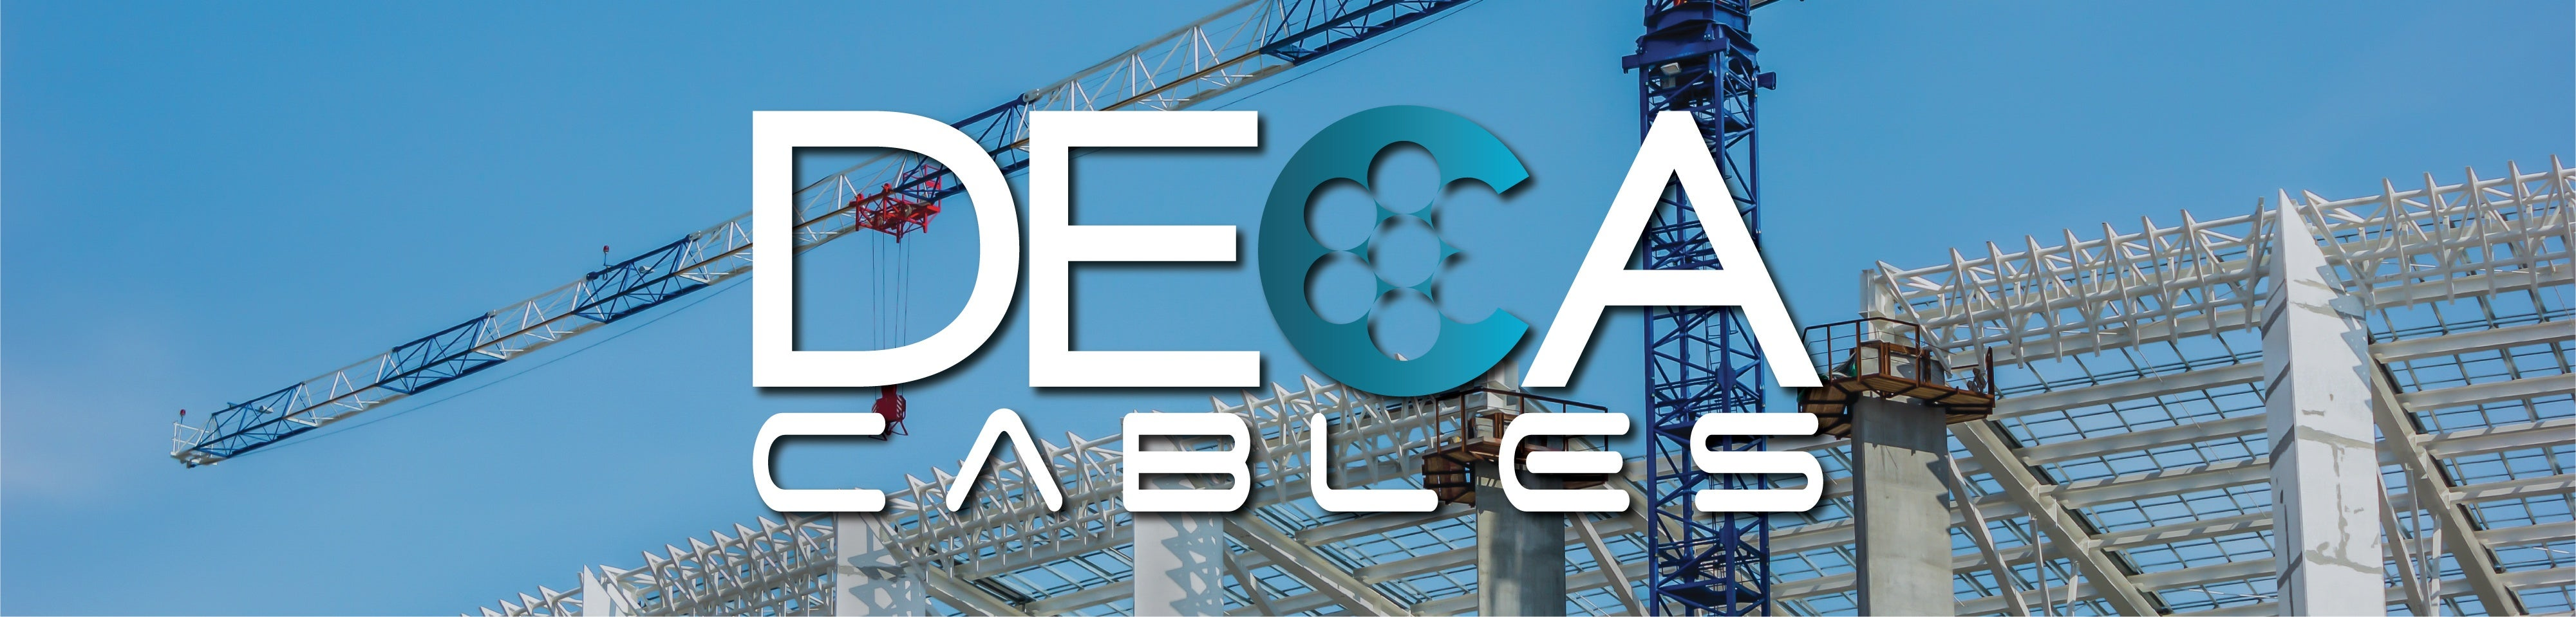 Featured Suppliers Banner Image - Deca Cables.jpg